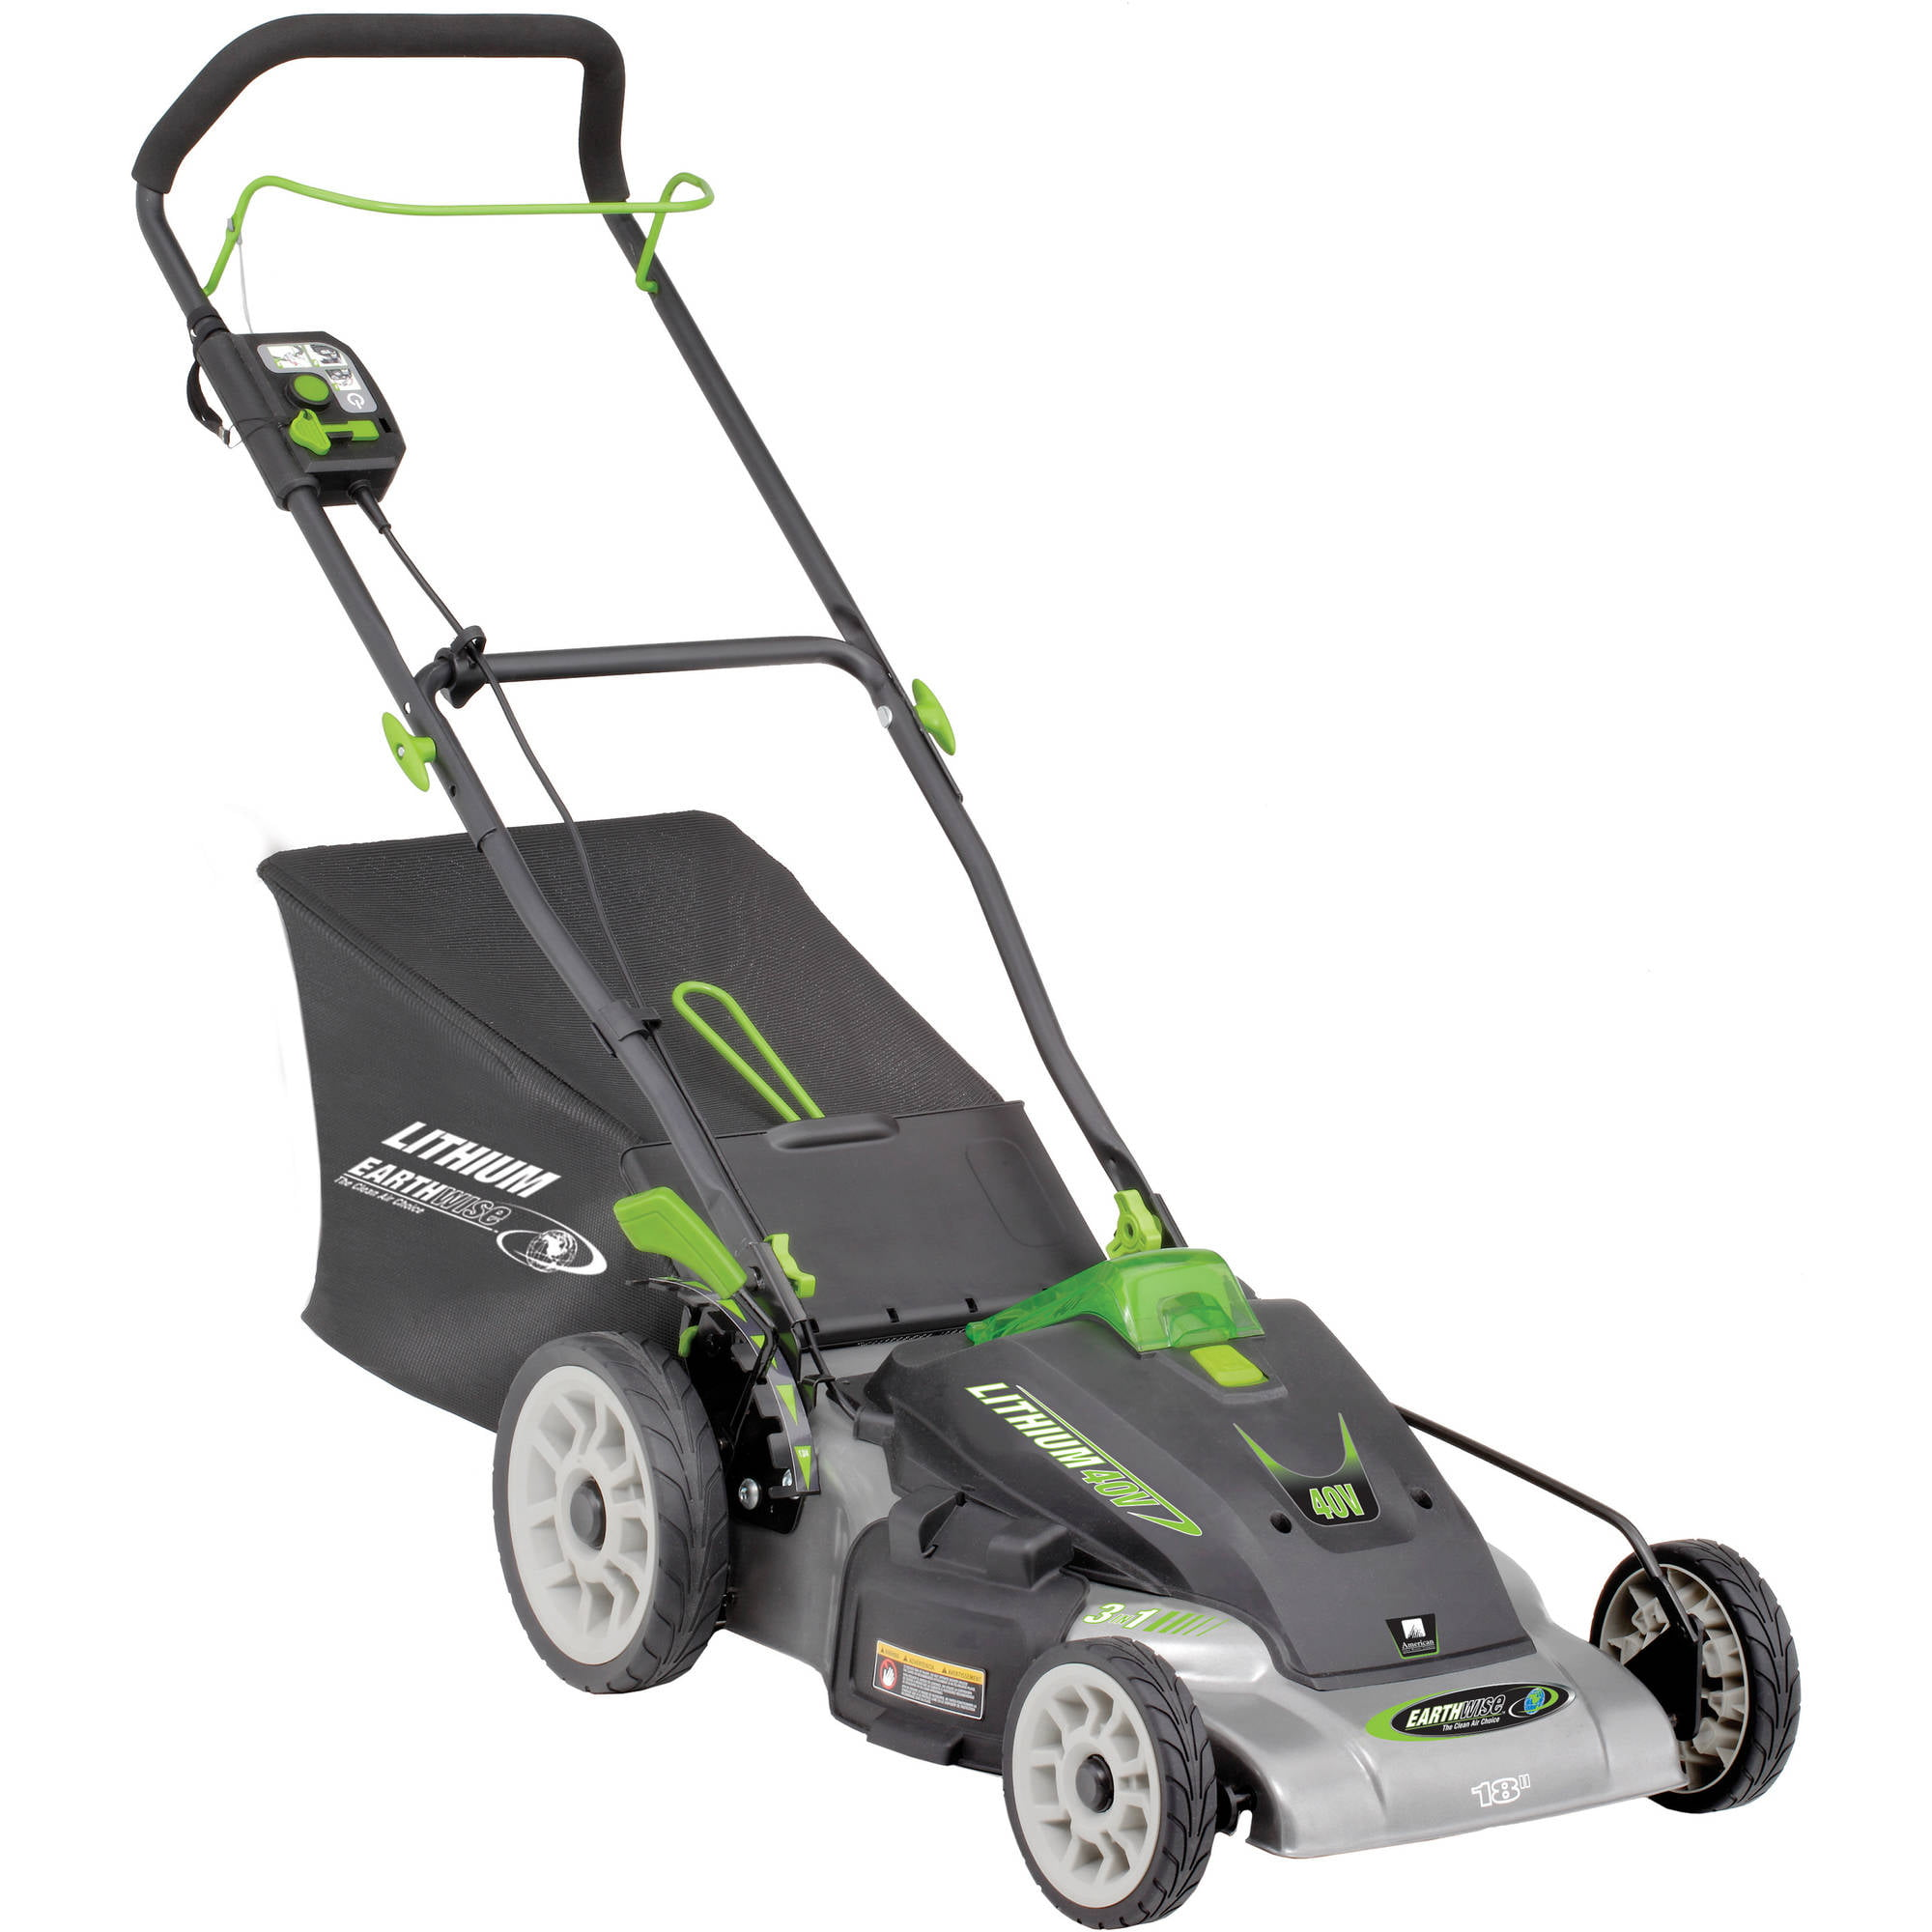 "Earthwise 60418 18"" 40-Volt Lithium Ion Cordless Electric Lawn Mower (Battery and charger included) by Great States Corporation"